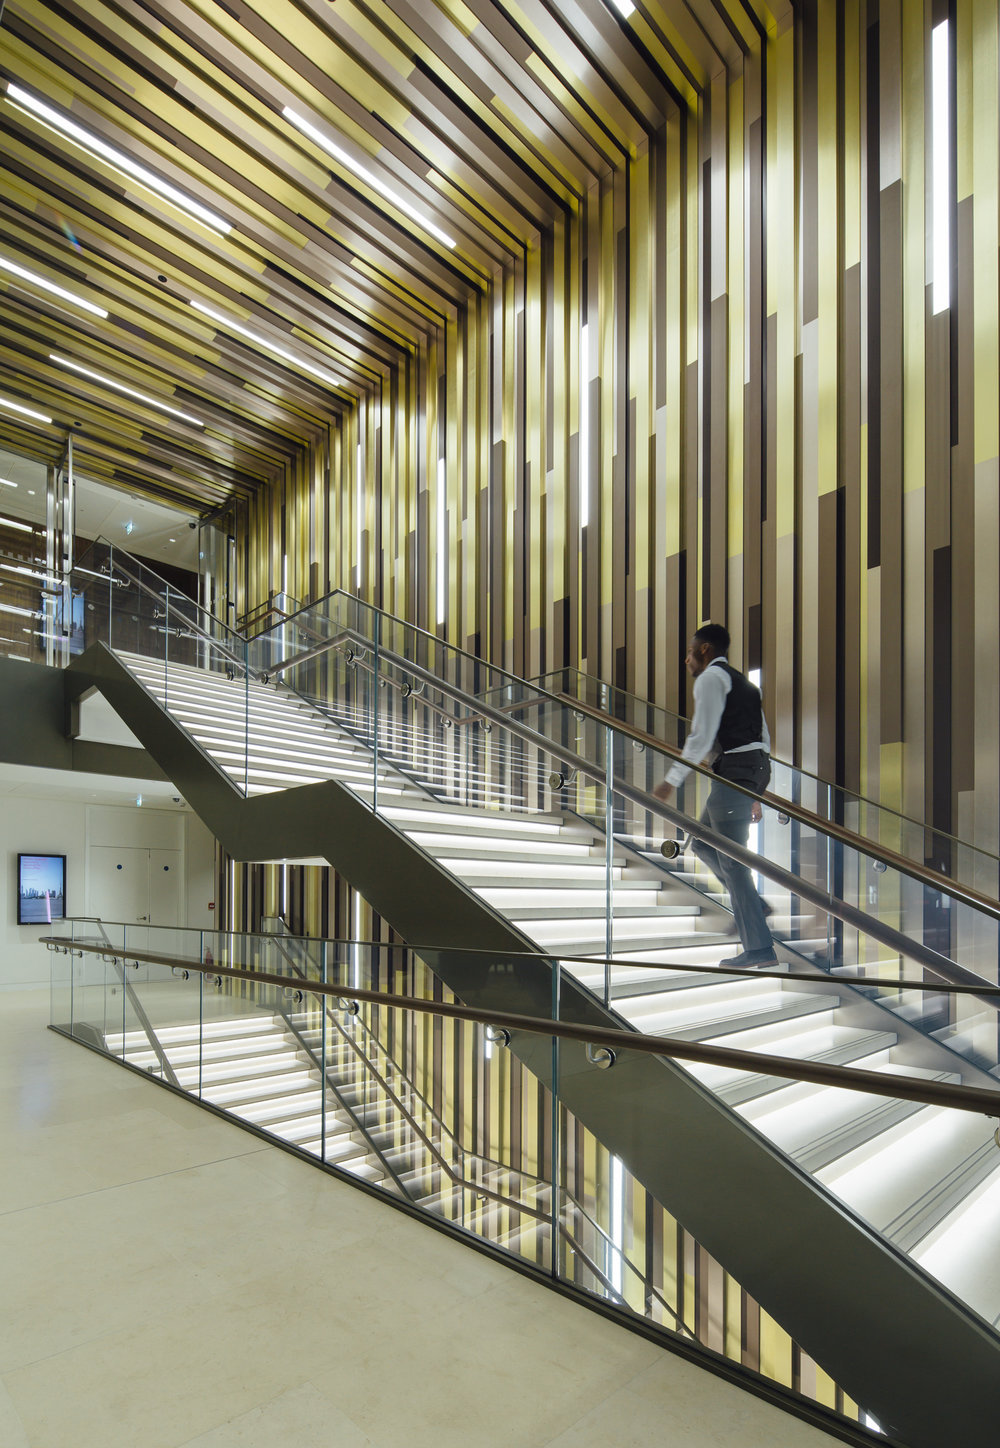 Staircase with Digital Signage & Wayfinding Screens